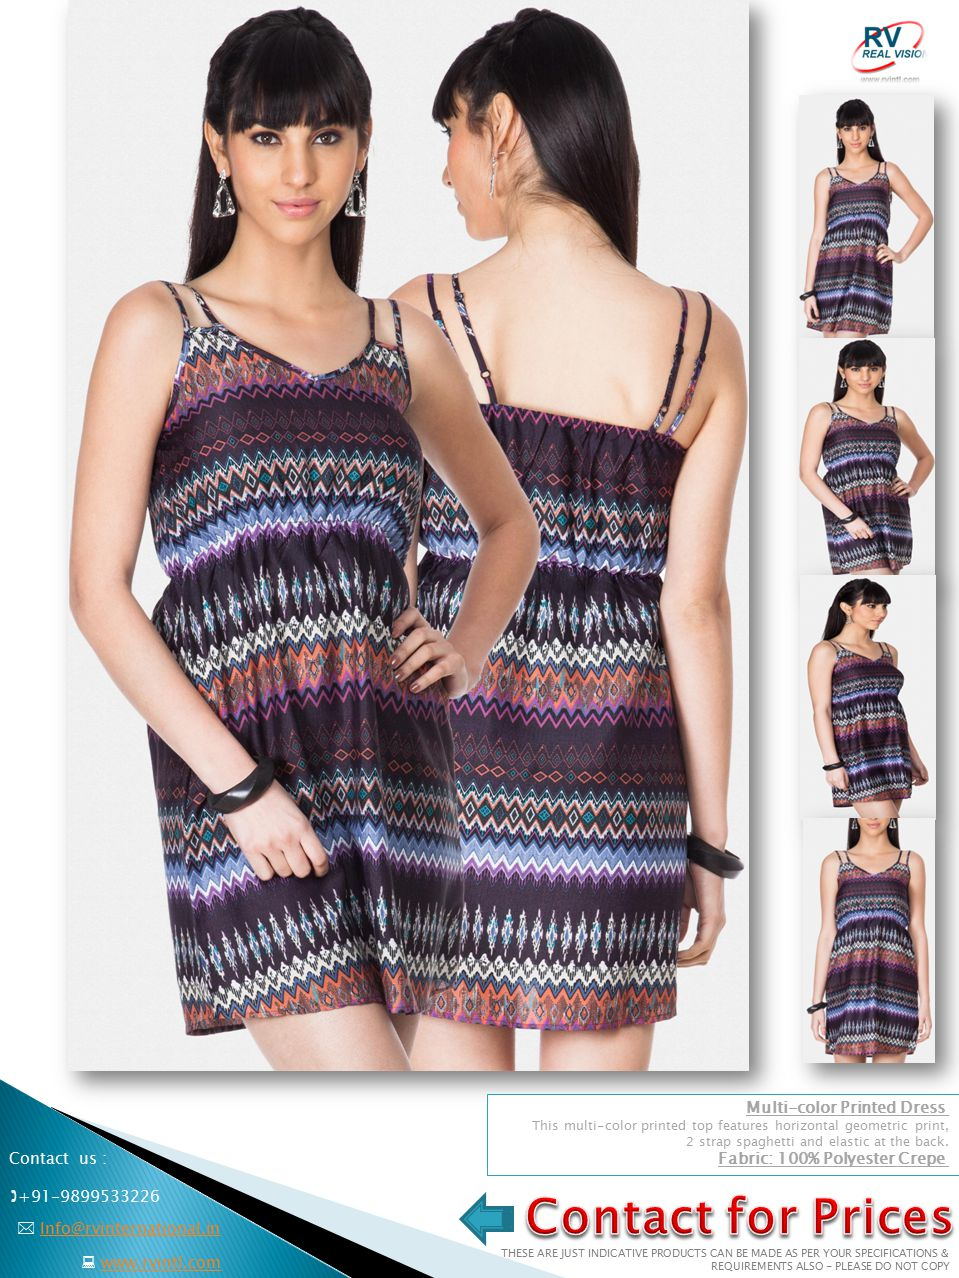 Multi-color Printed Dress This multi-color printed top features horizontal geometric print, 2 strap spaghetti and elastic at the back.